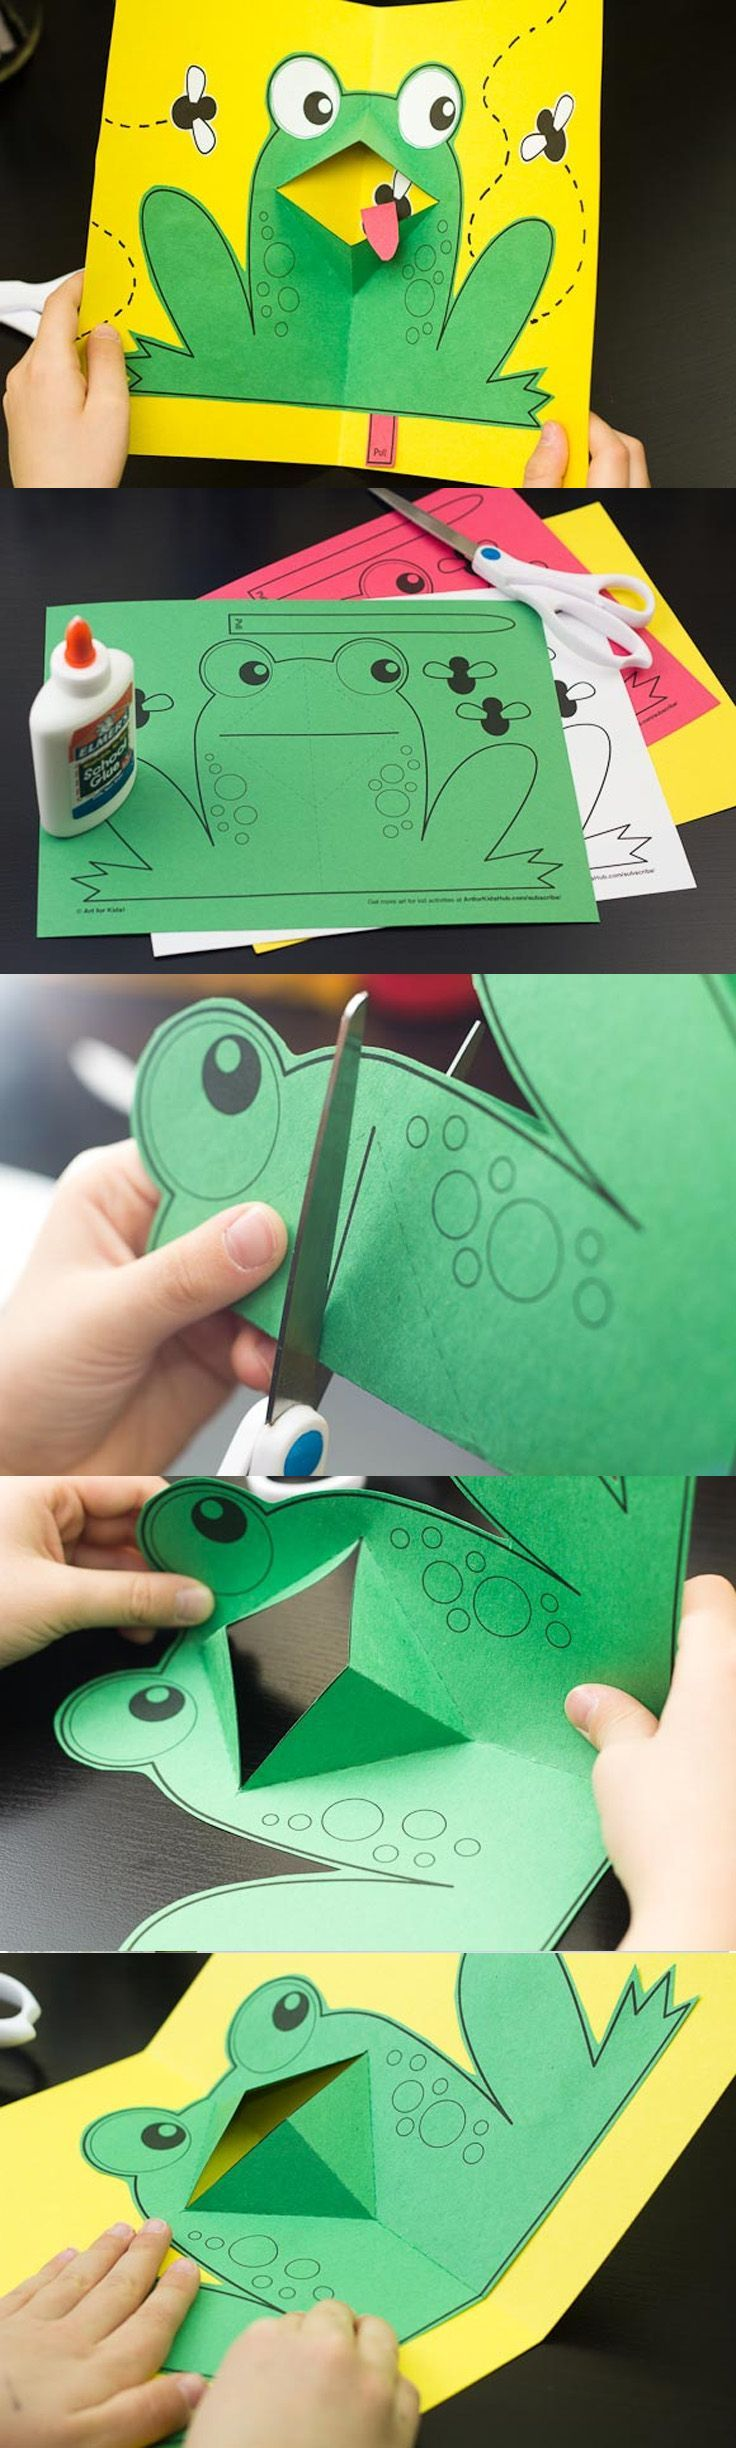 Pop up frog card for kids лобзик pinterest frogs craft and cards